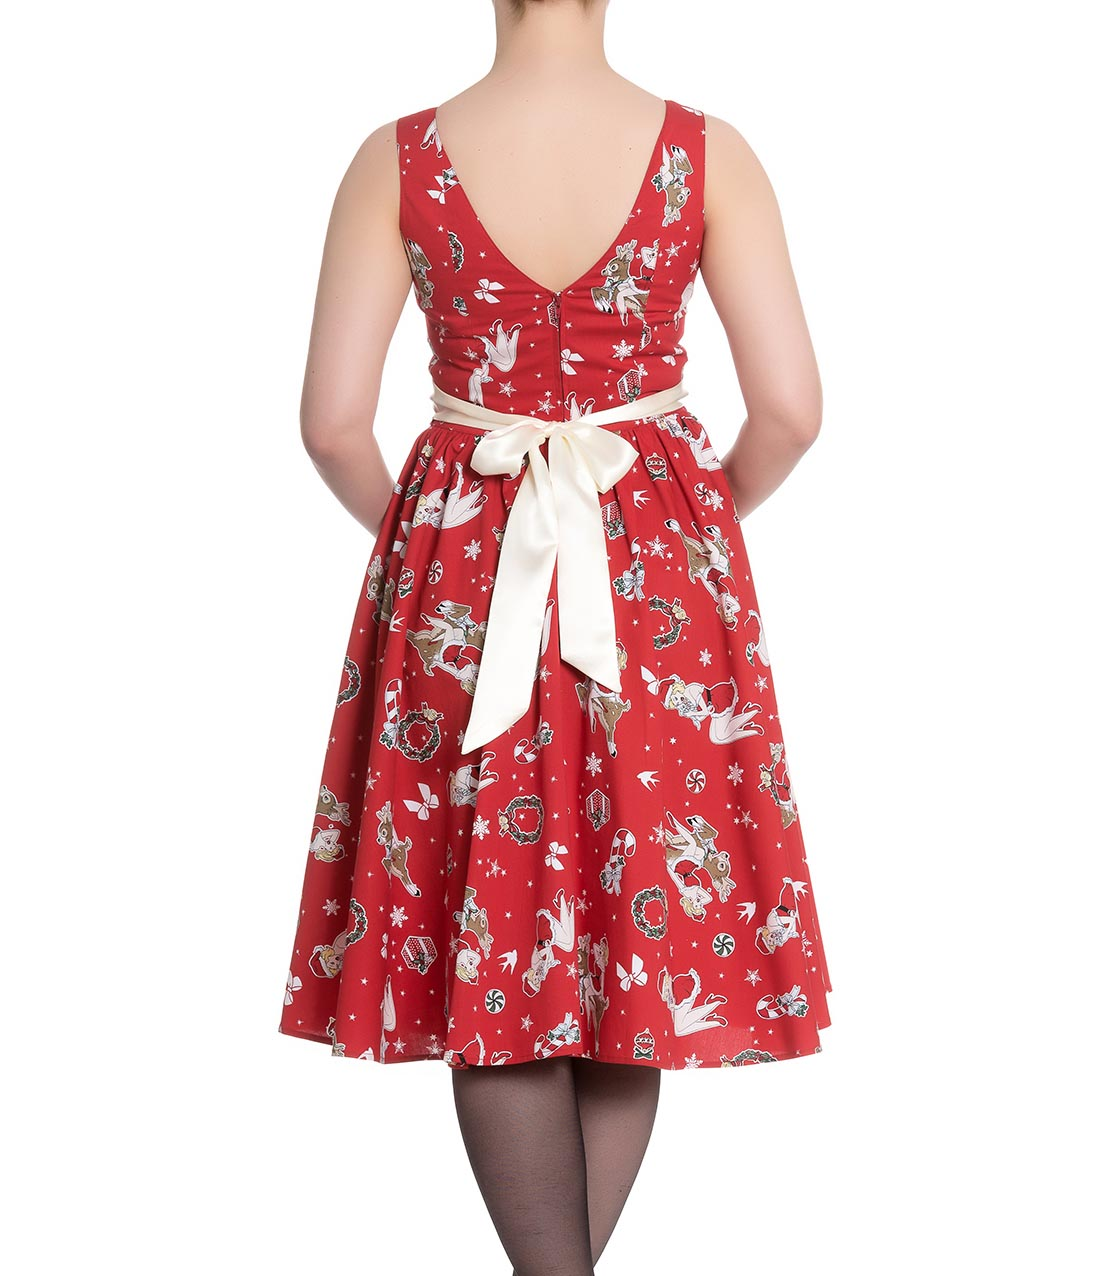 Hell-Bunny-Christmas-Noel-50s-Pin-Up-Rockabilly-Dress-BLITZEN-Red-All-Sizes thumbnail 5